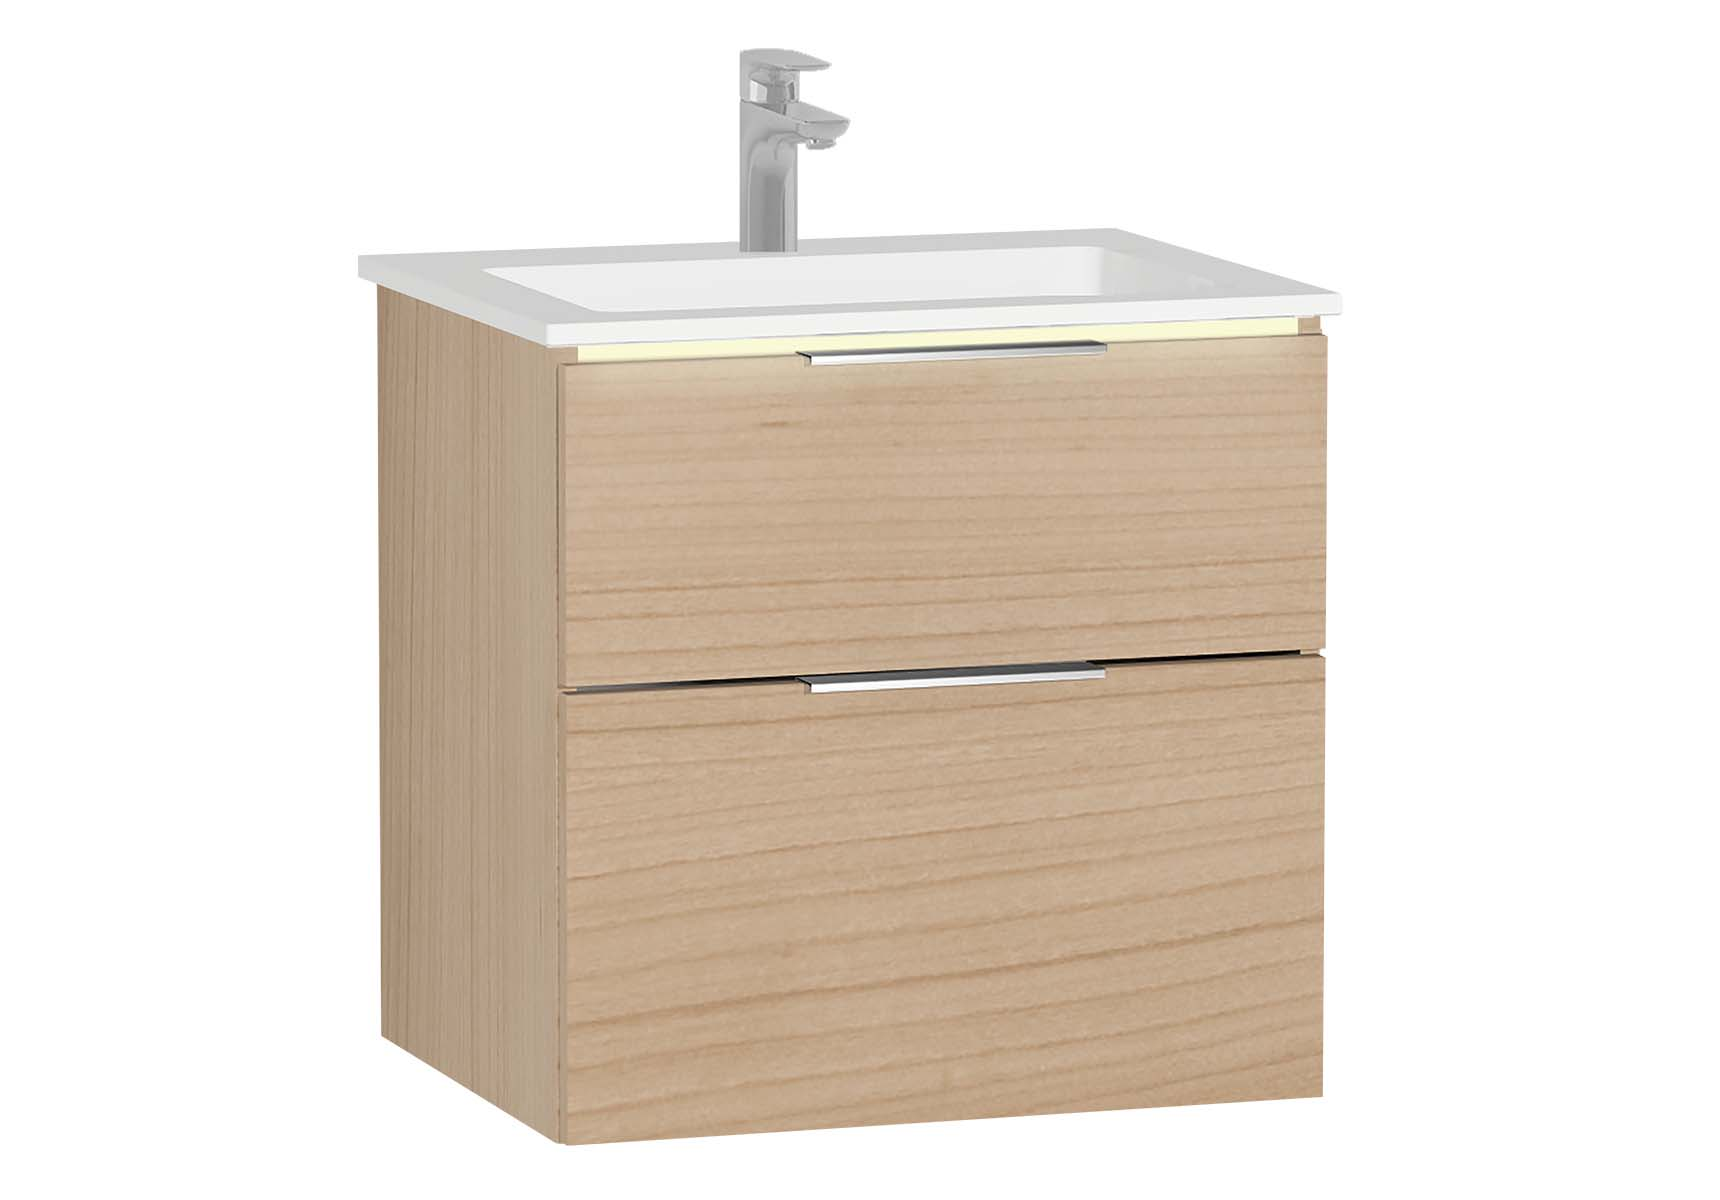 Central Washbasin Unit with 2 drawers, 60 cm, Golden Cherry, Infinit Washbasin, Led